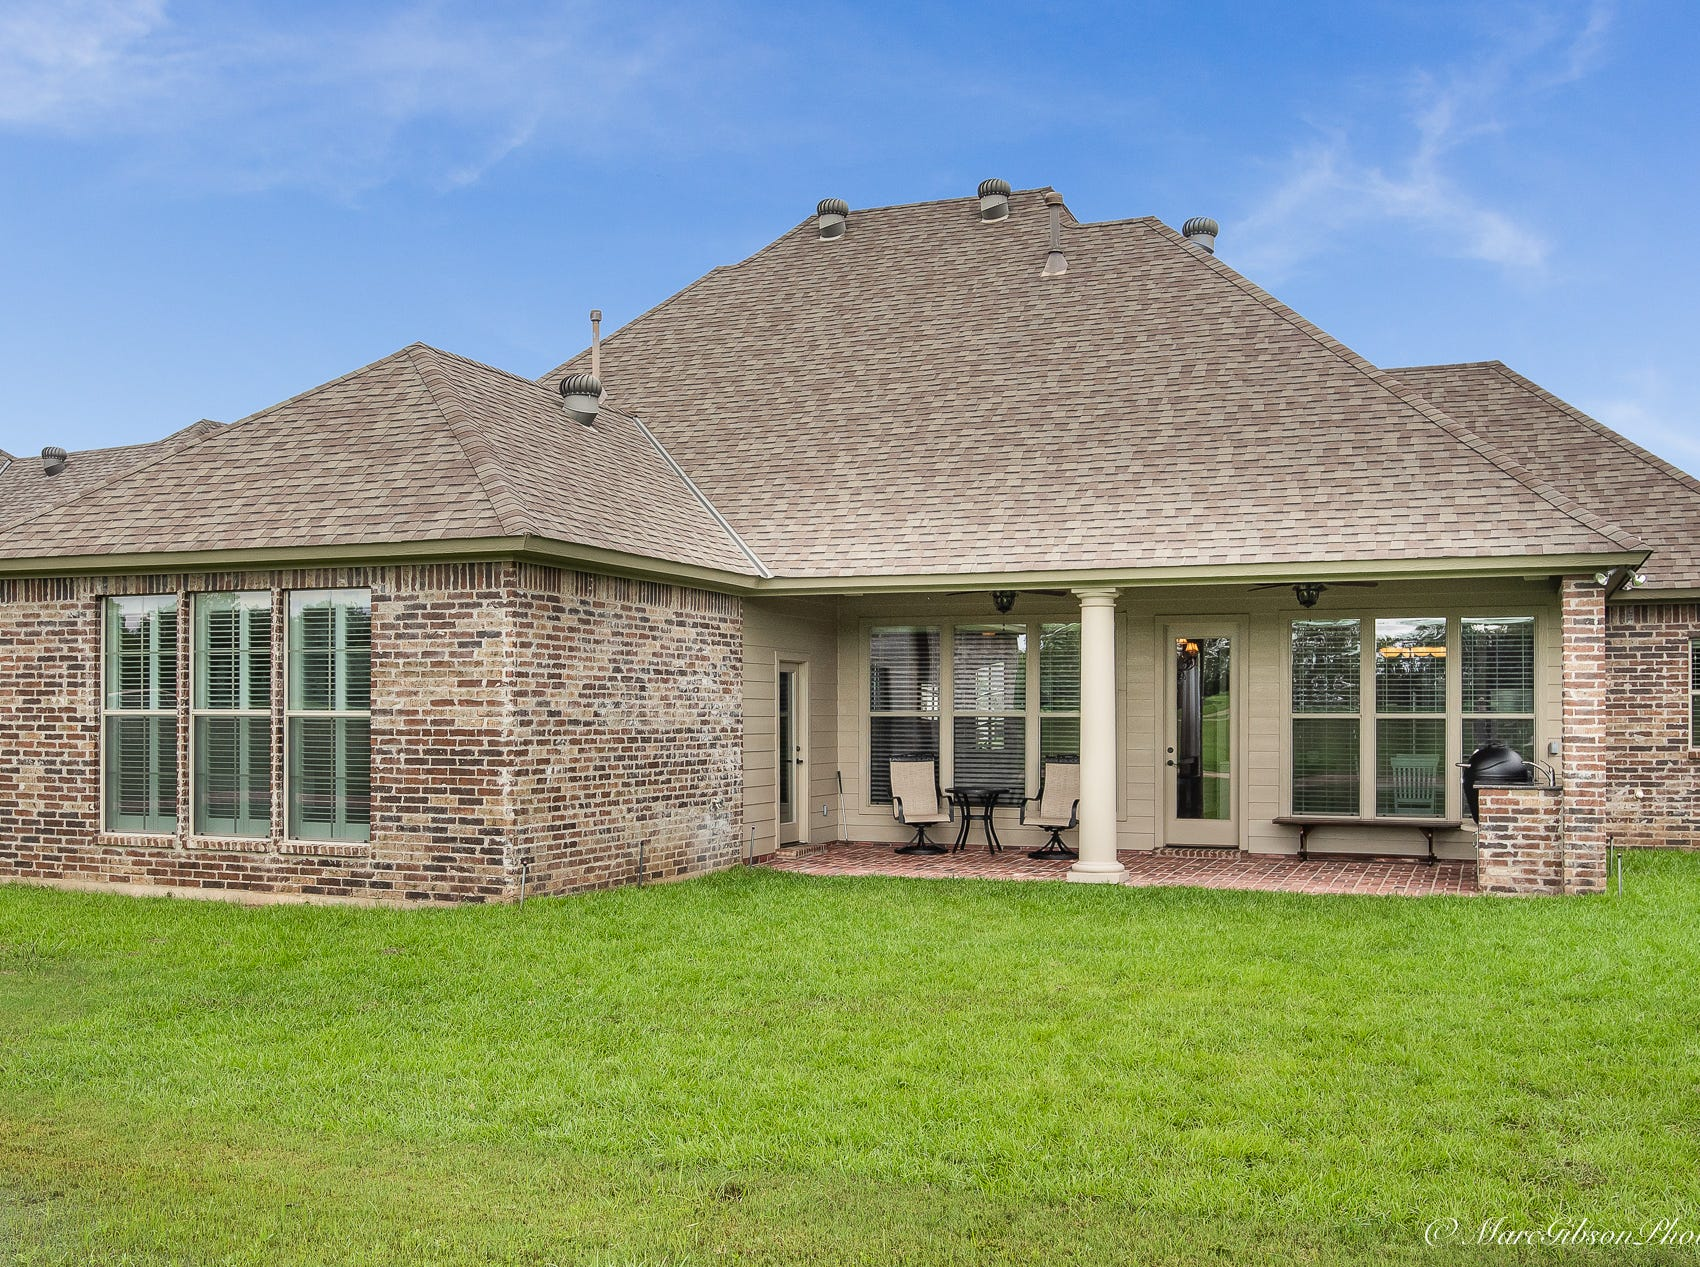 224 Macey Lane,   Bossier City  Price: $349,500  Details: 4 bedrooms, 3 bathrooms, 2,404 square feet  Featuring: Golf course living in StoneBridge. Beautiful molding, spacious living room with a wall of windows that view the 11th hole.   Contact: Crystal Butler, 347-9618